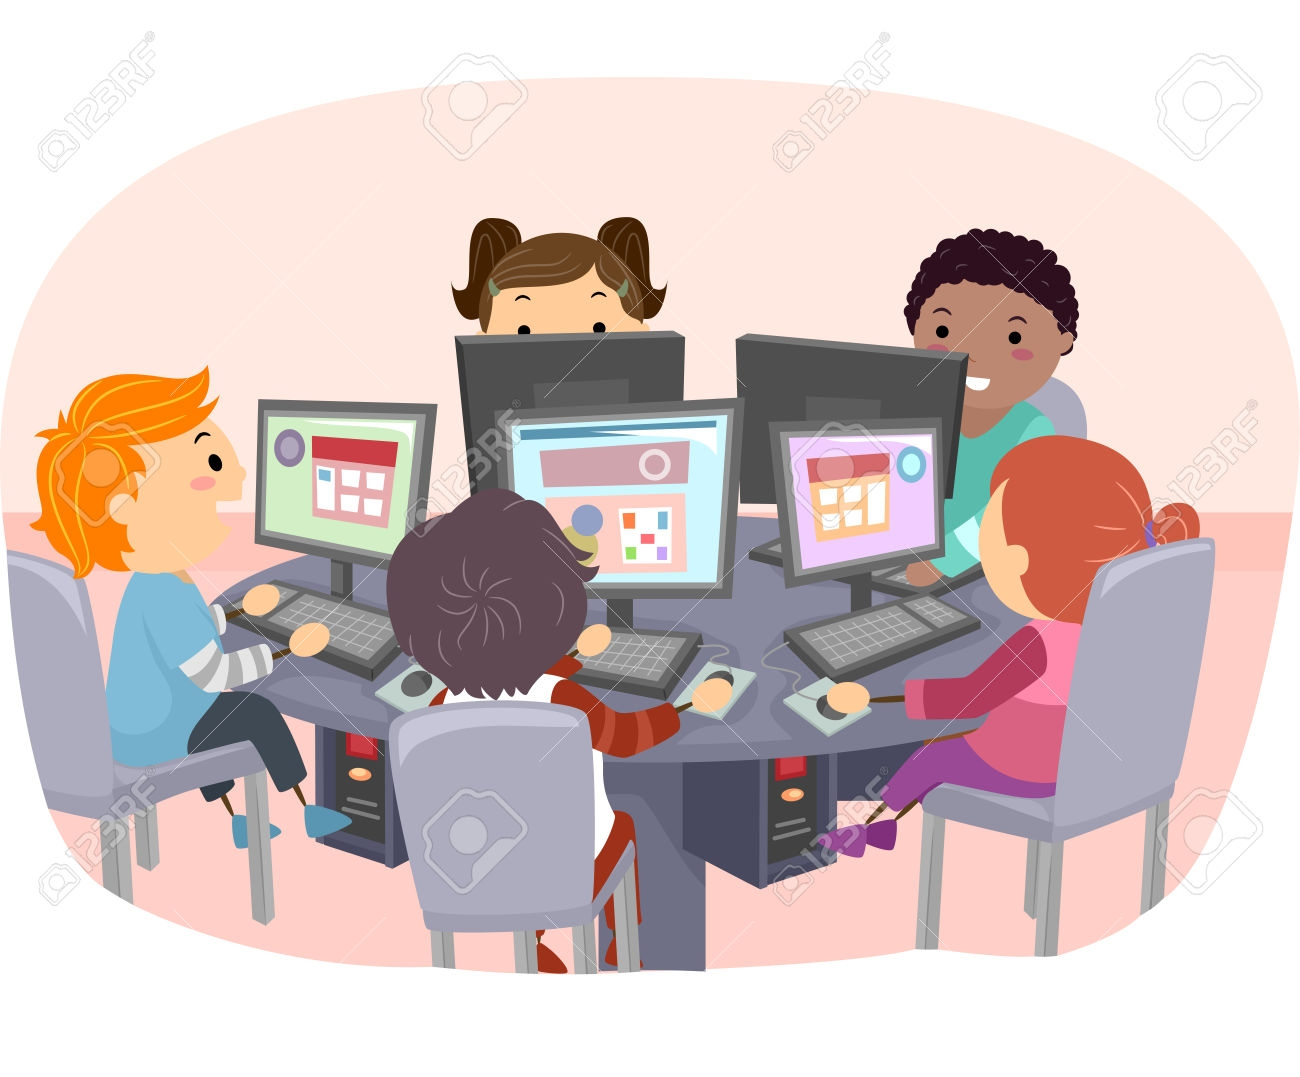 Computer clipart with kids. Lab clipartfest